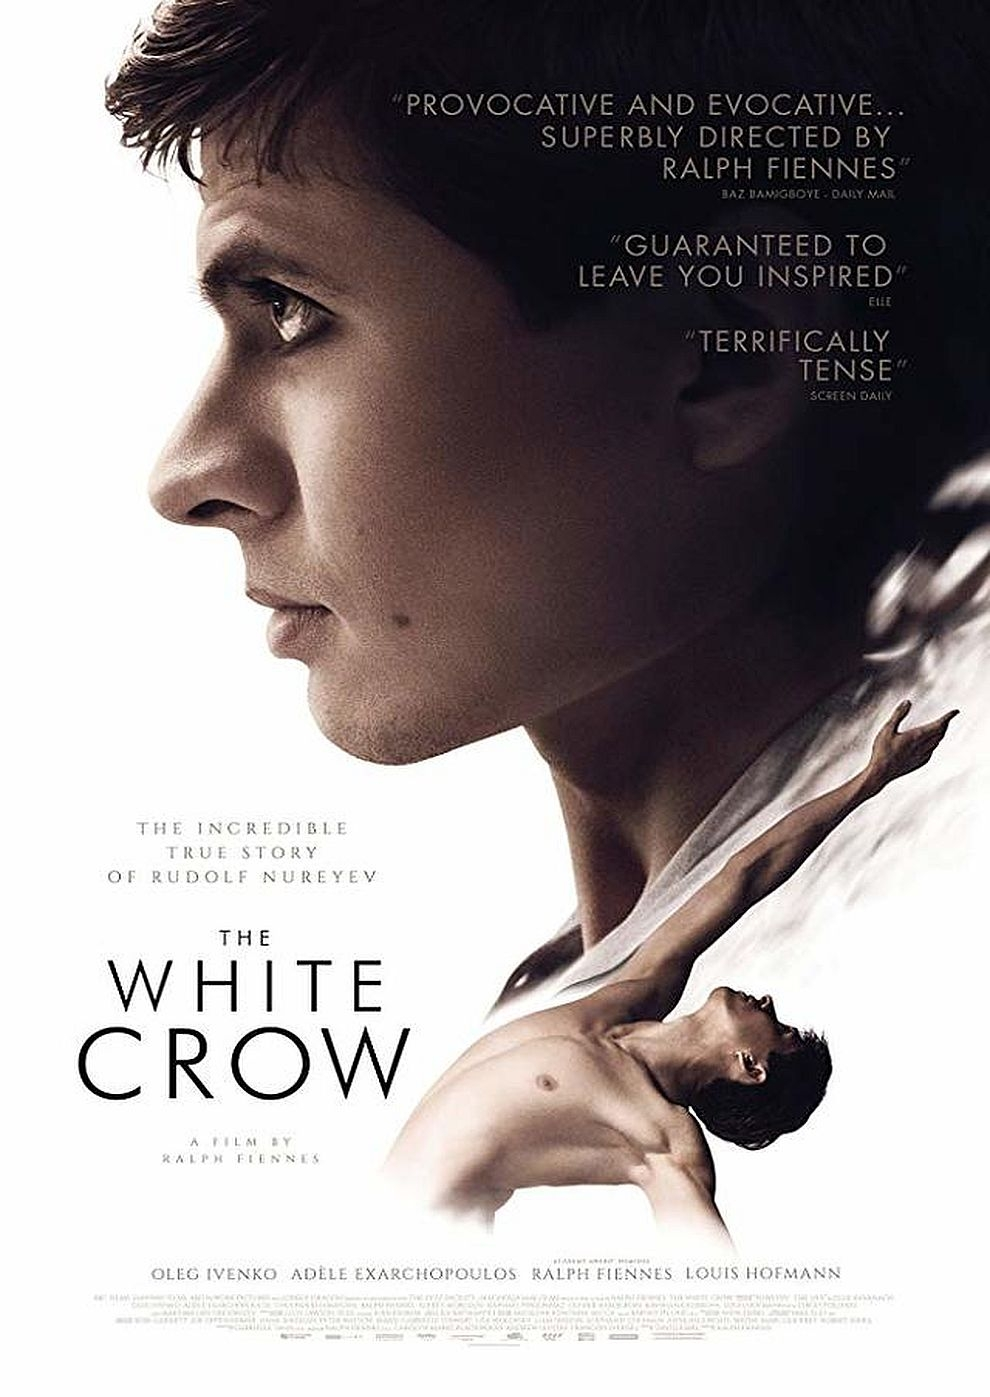 Nurejew - The White Crow (Poster)